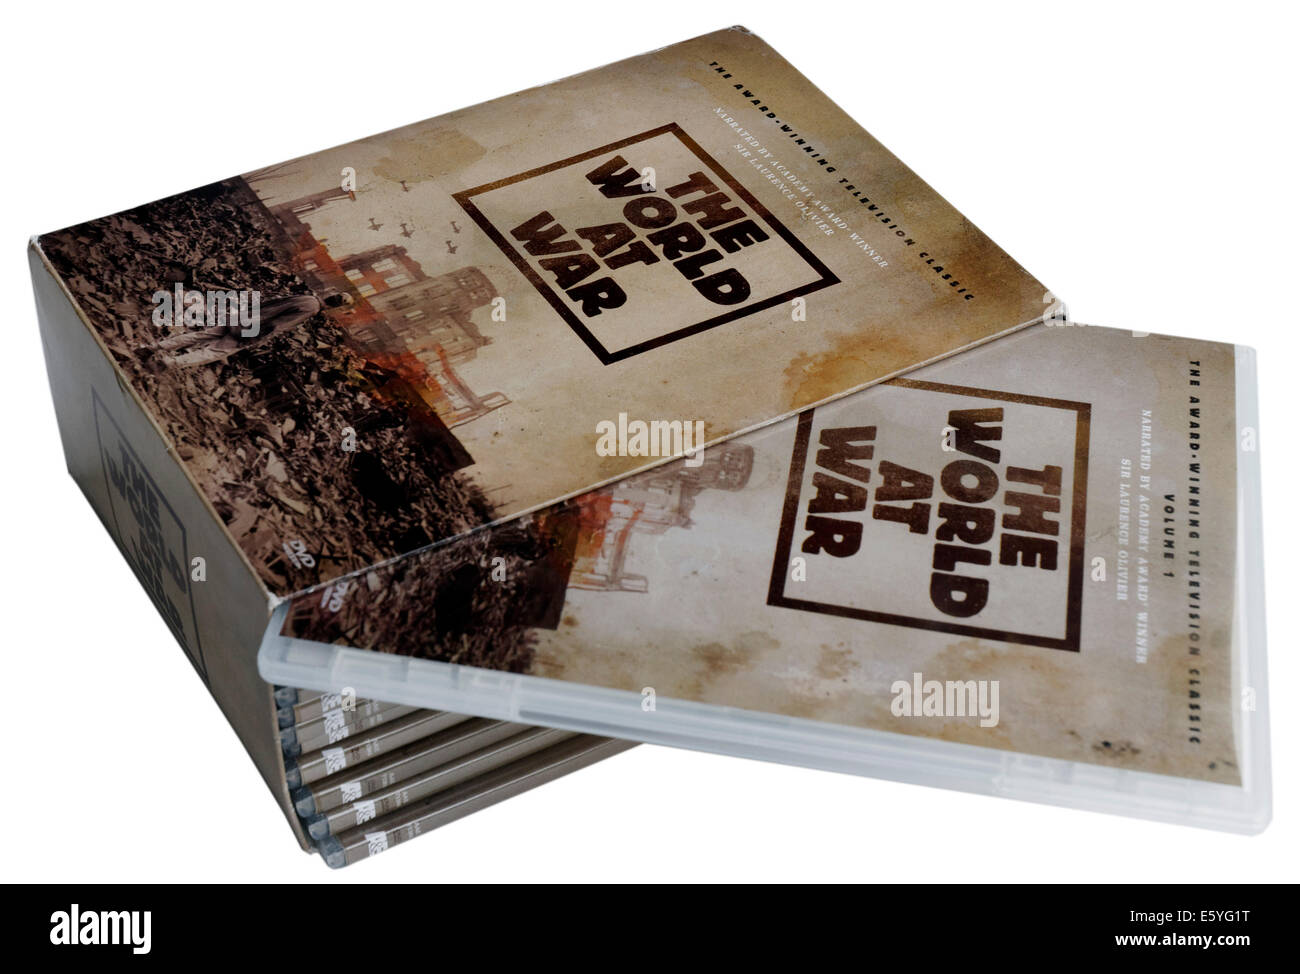 The legendary Thames Television series The World at War documentary on DVD - Stock Image